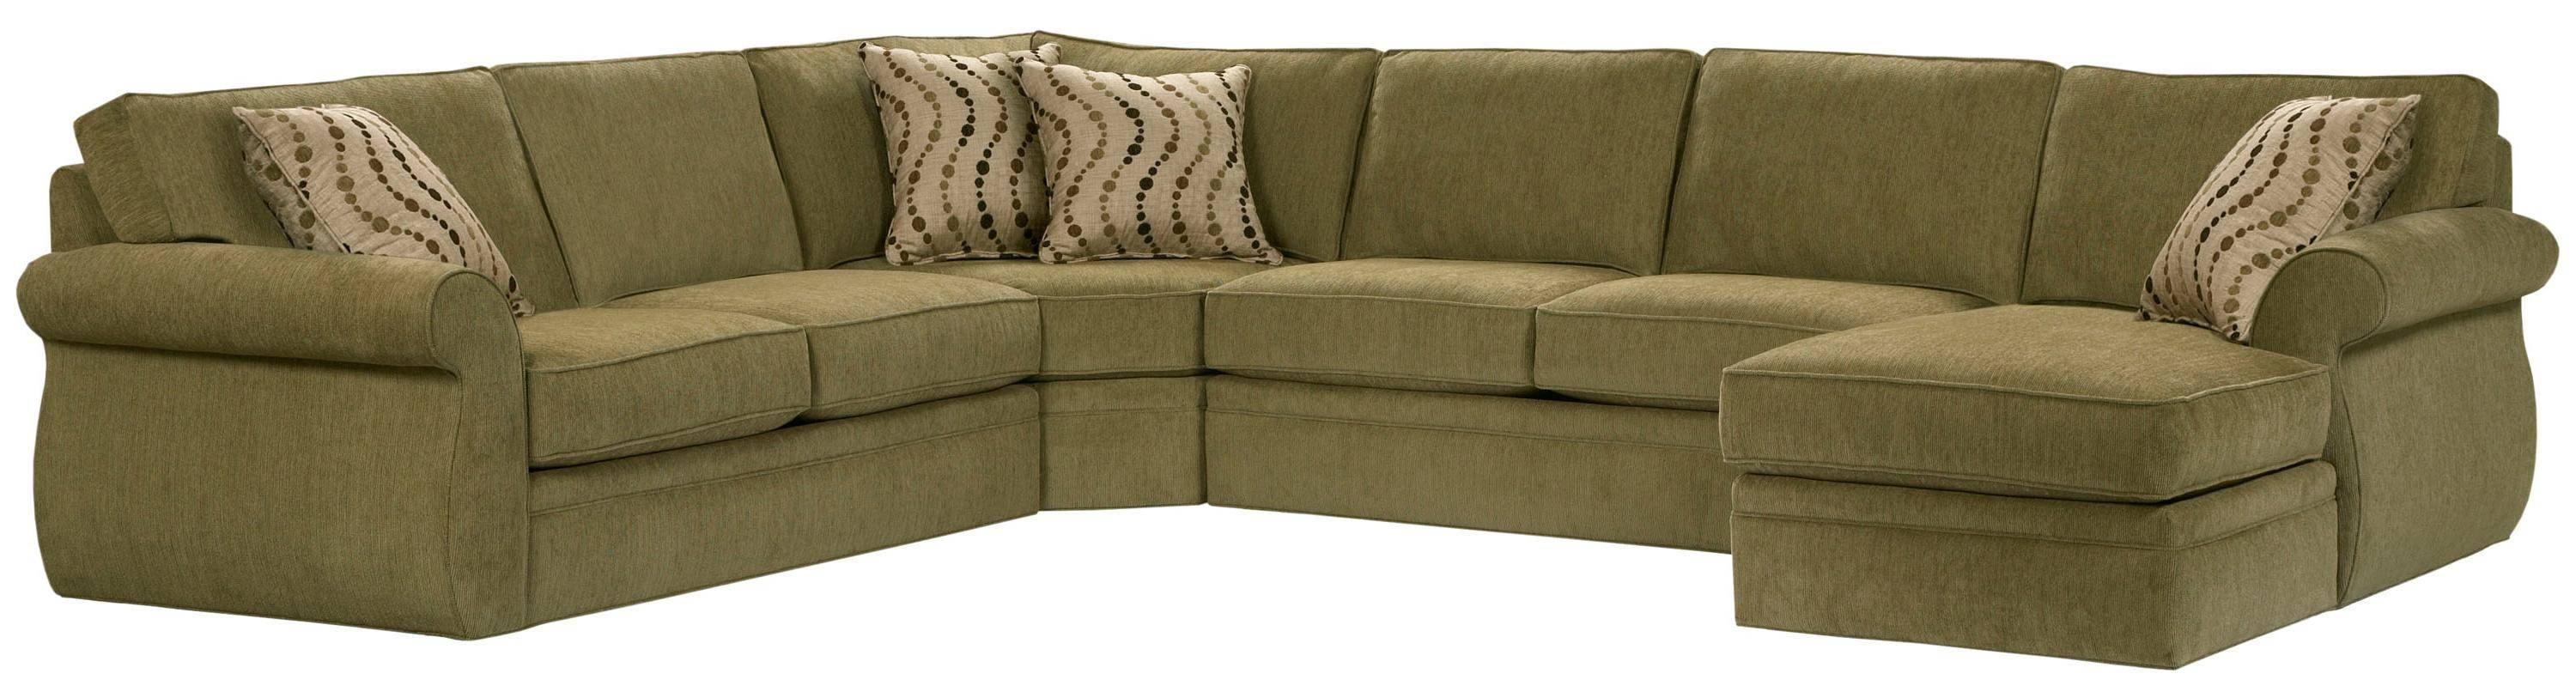 Broyhill Furniture Veronica Right Arm Facing Customizable Chaise intended for Broyhill Sectional Sofa (Image 15 of 30)